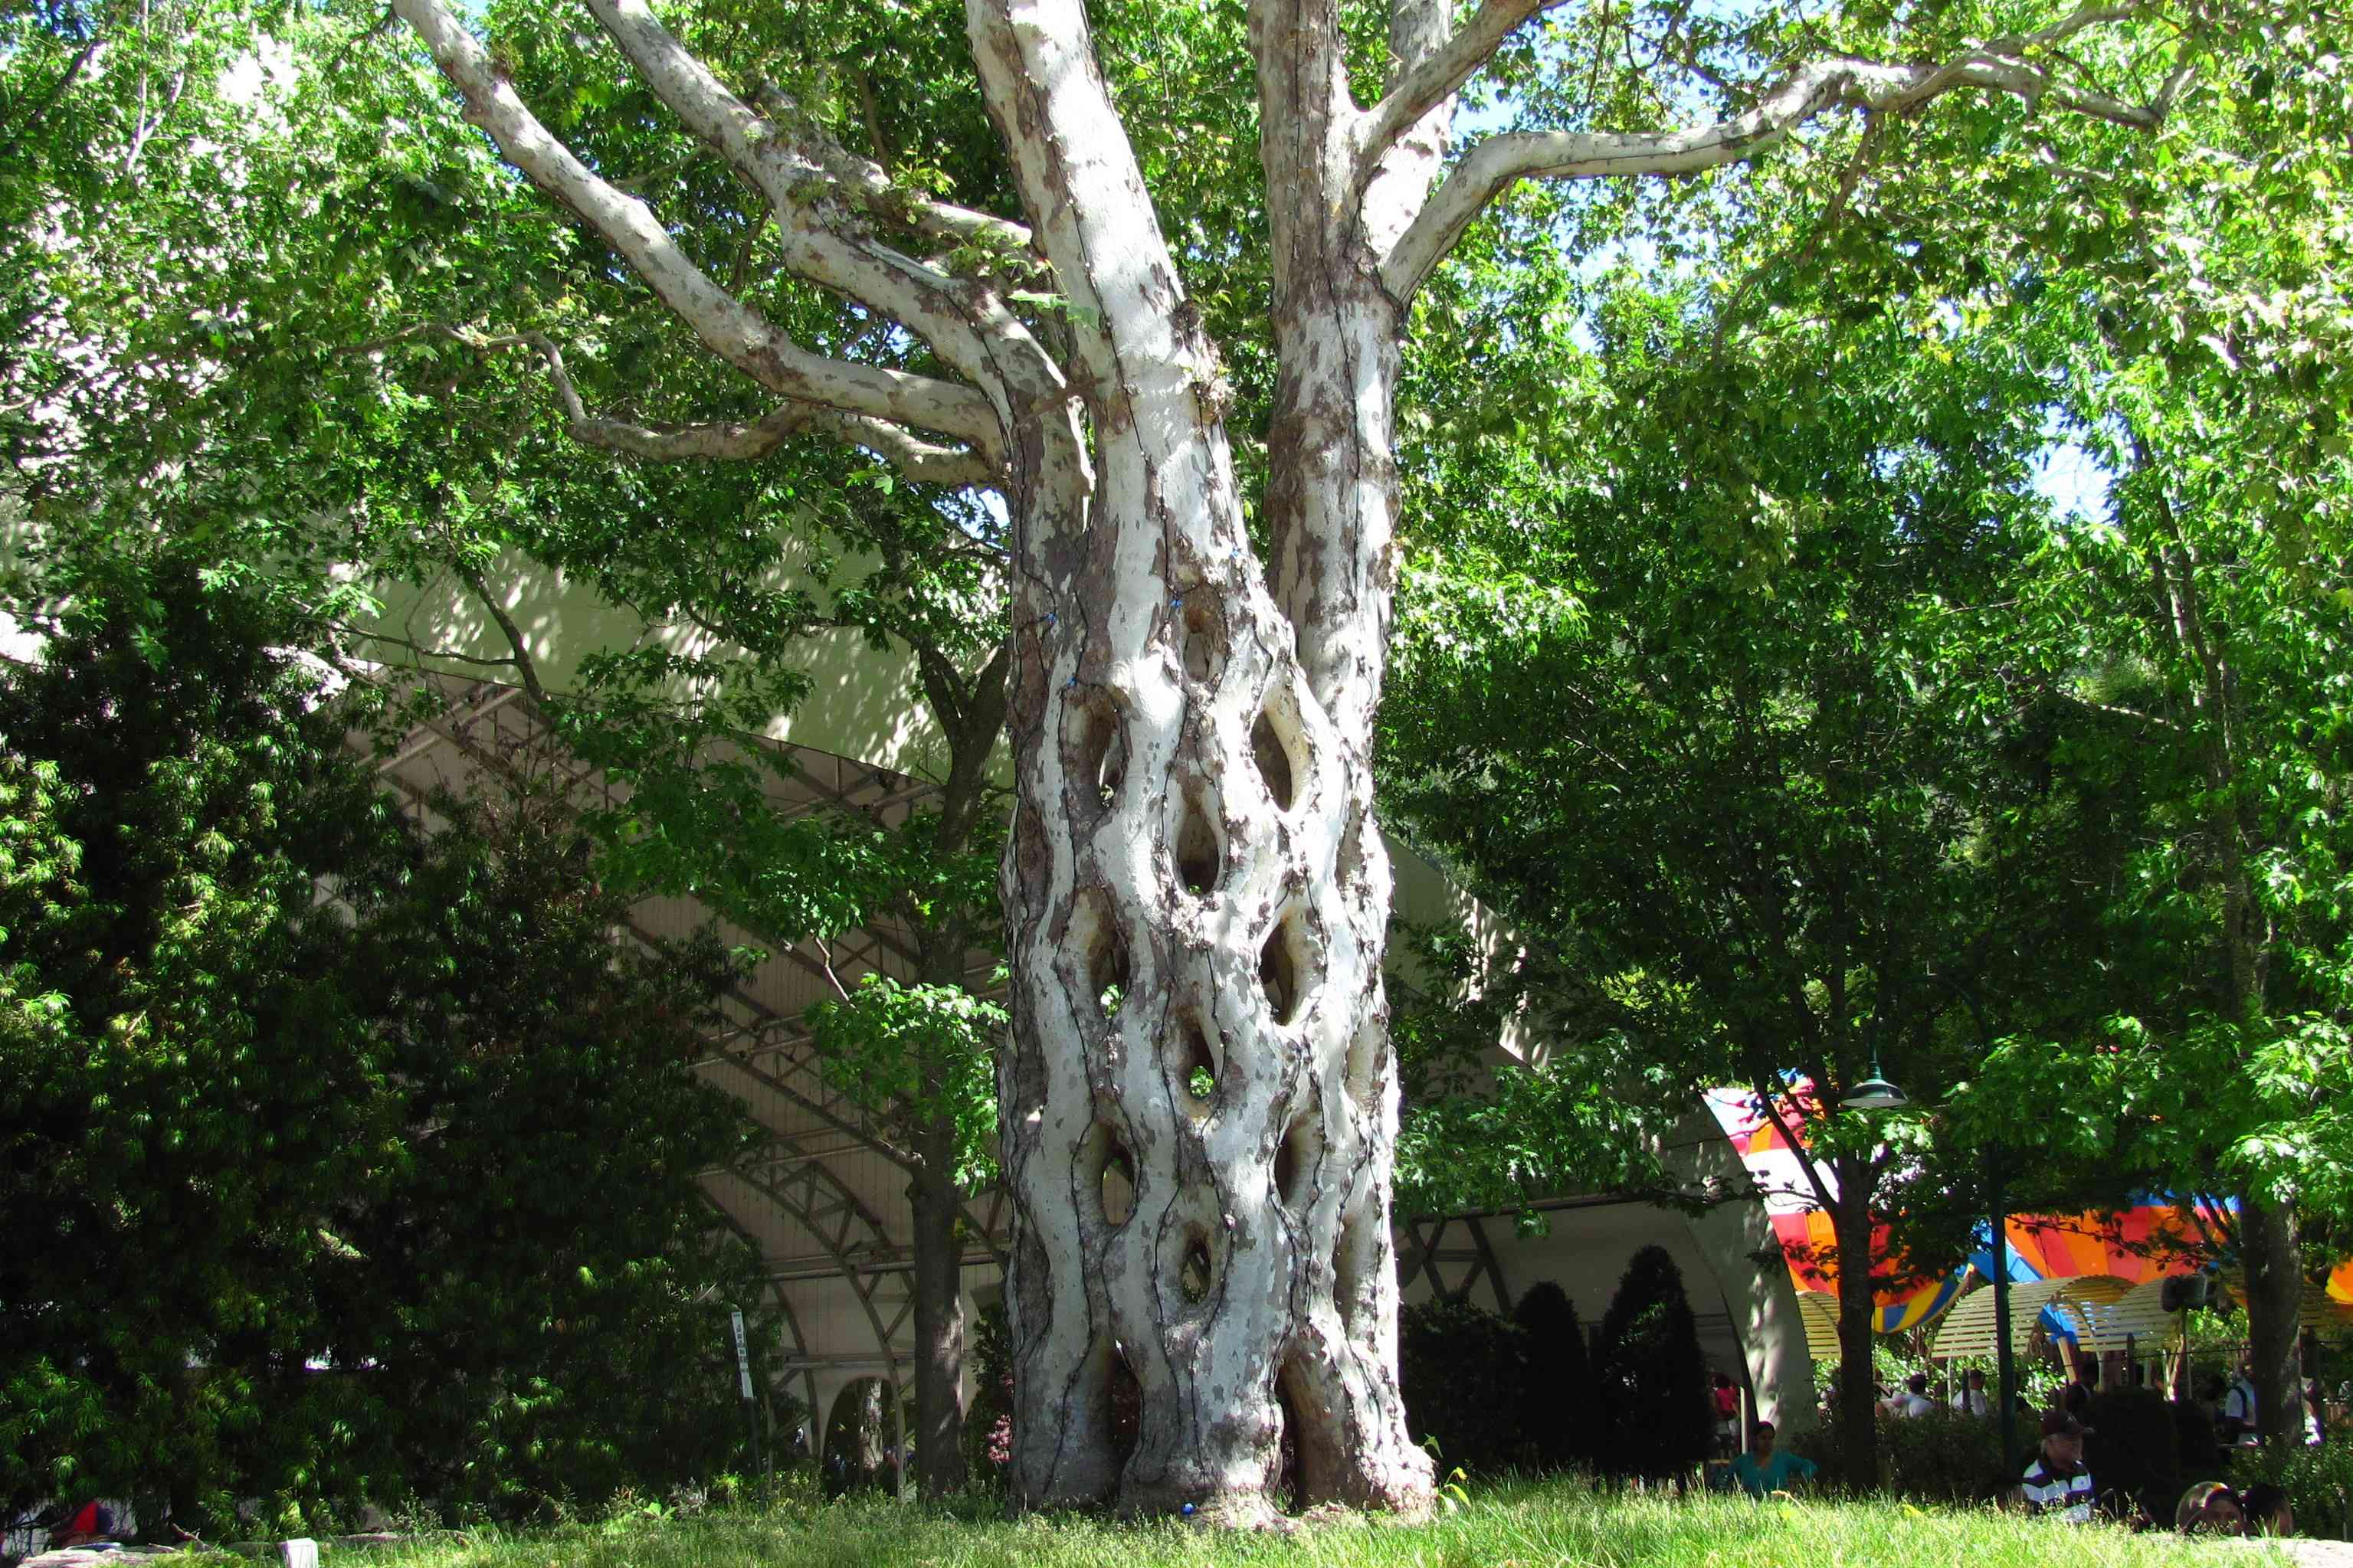 Circus tree at Gilroy Gardens with a latticed trunk